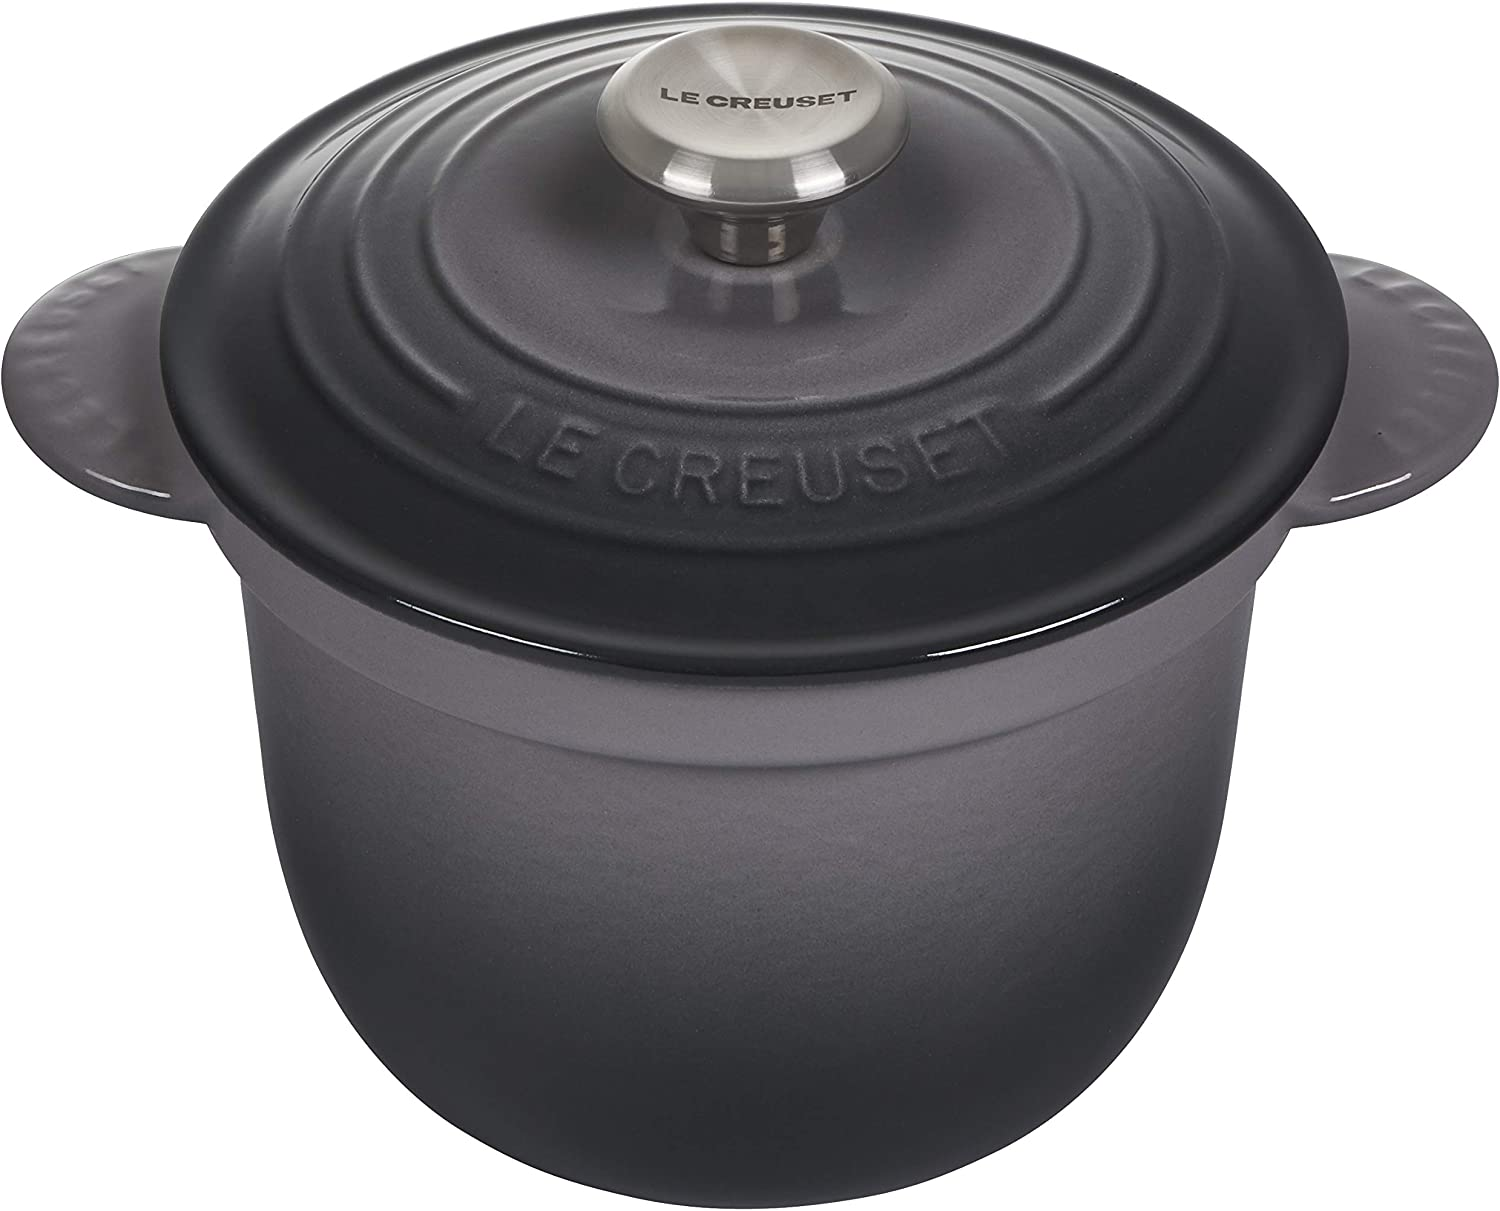 Le Creuset LS4101S-187FSS Enameled Cast Iron Rice Pot with Stoneware Insert, 2.25-Quart, Oyster